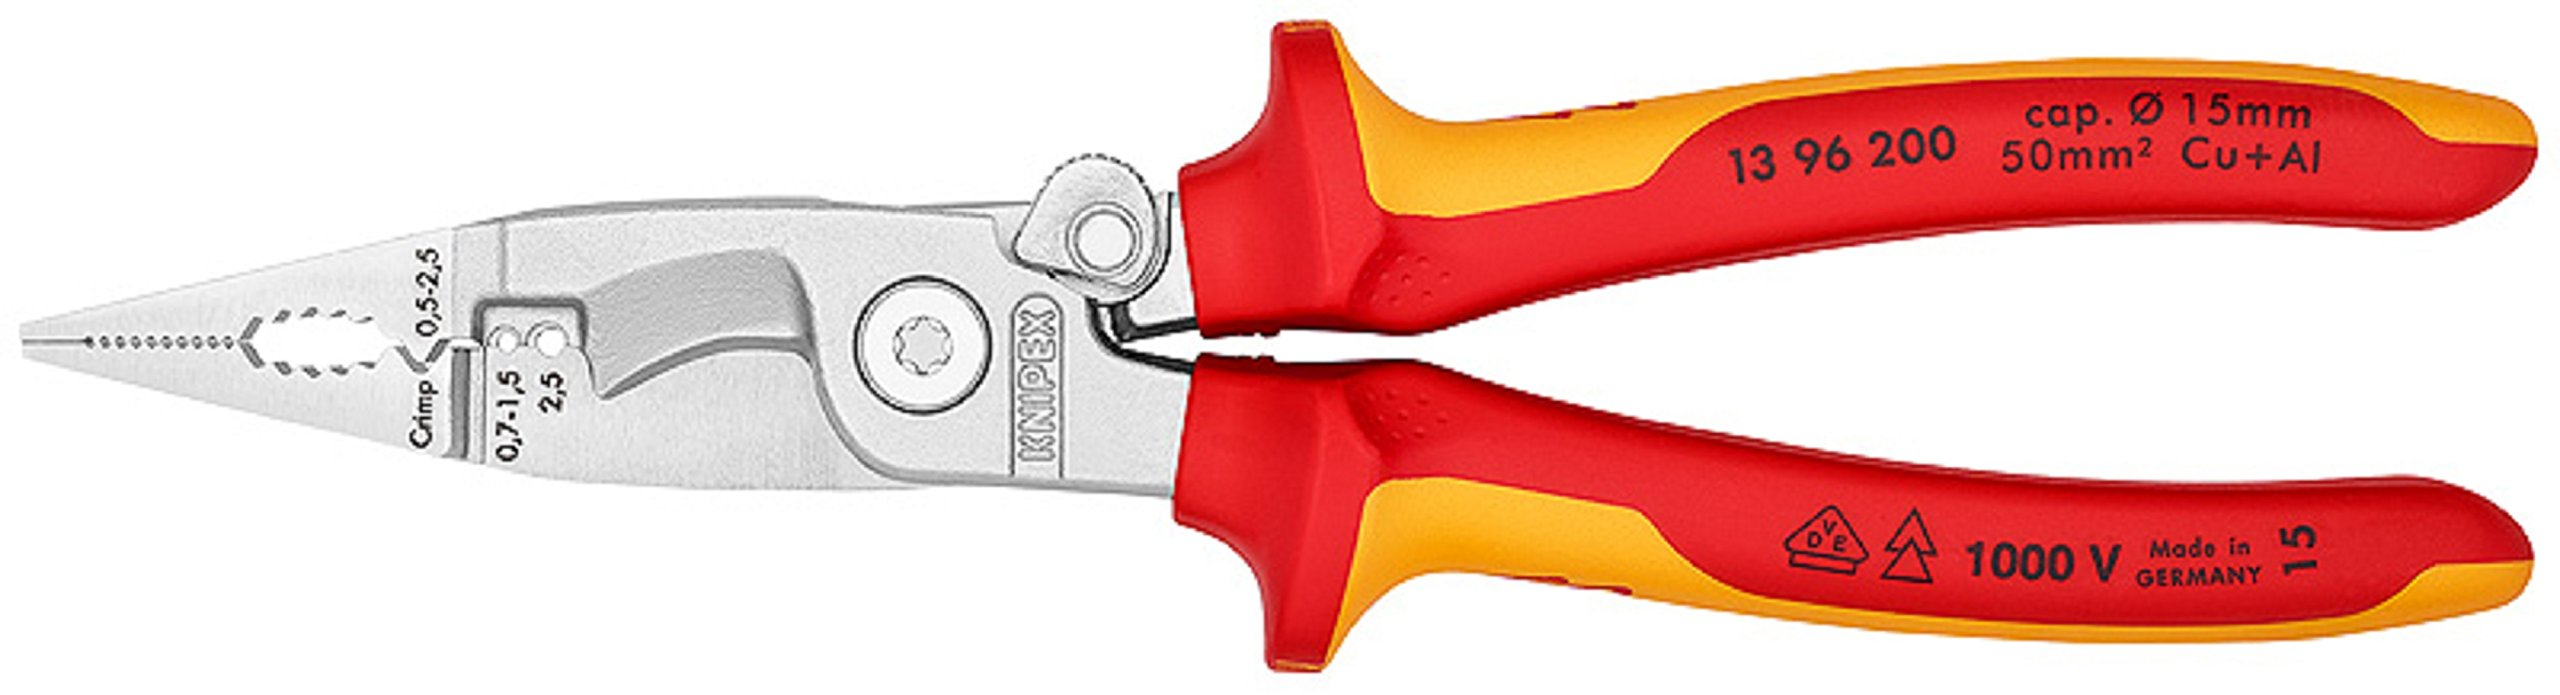 13 96 200 T BK Pliers For Electrical Installation VDE-Tested with Tether Attachment Pt. In Blister Packaging